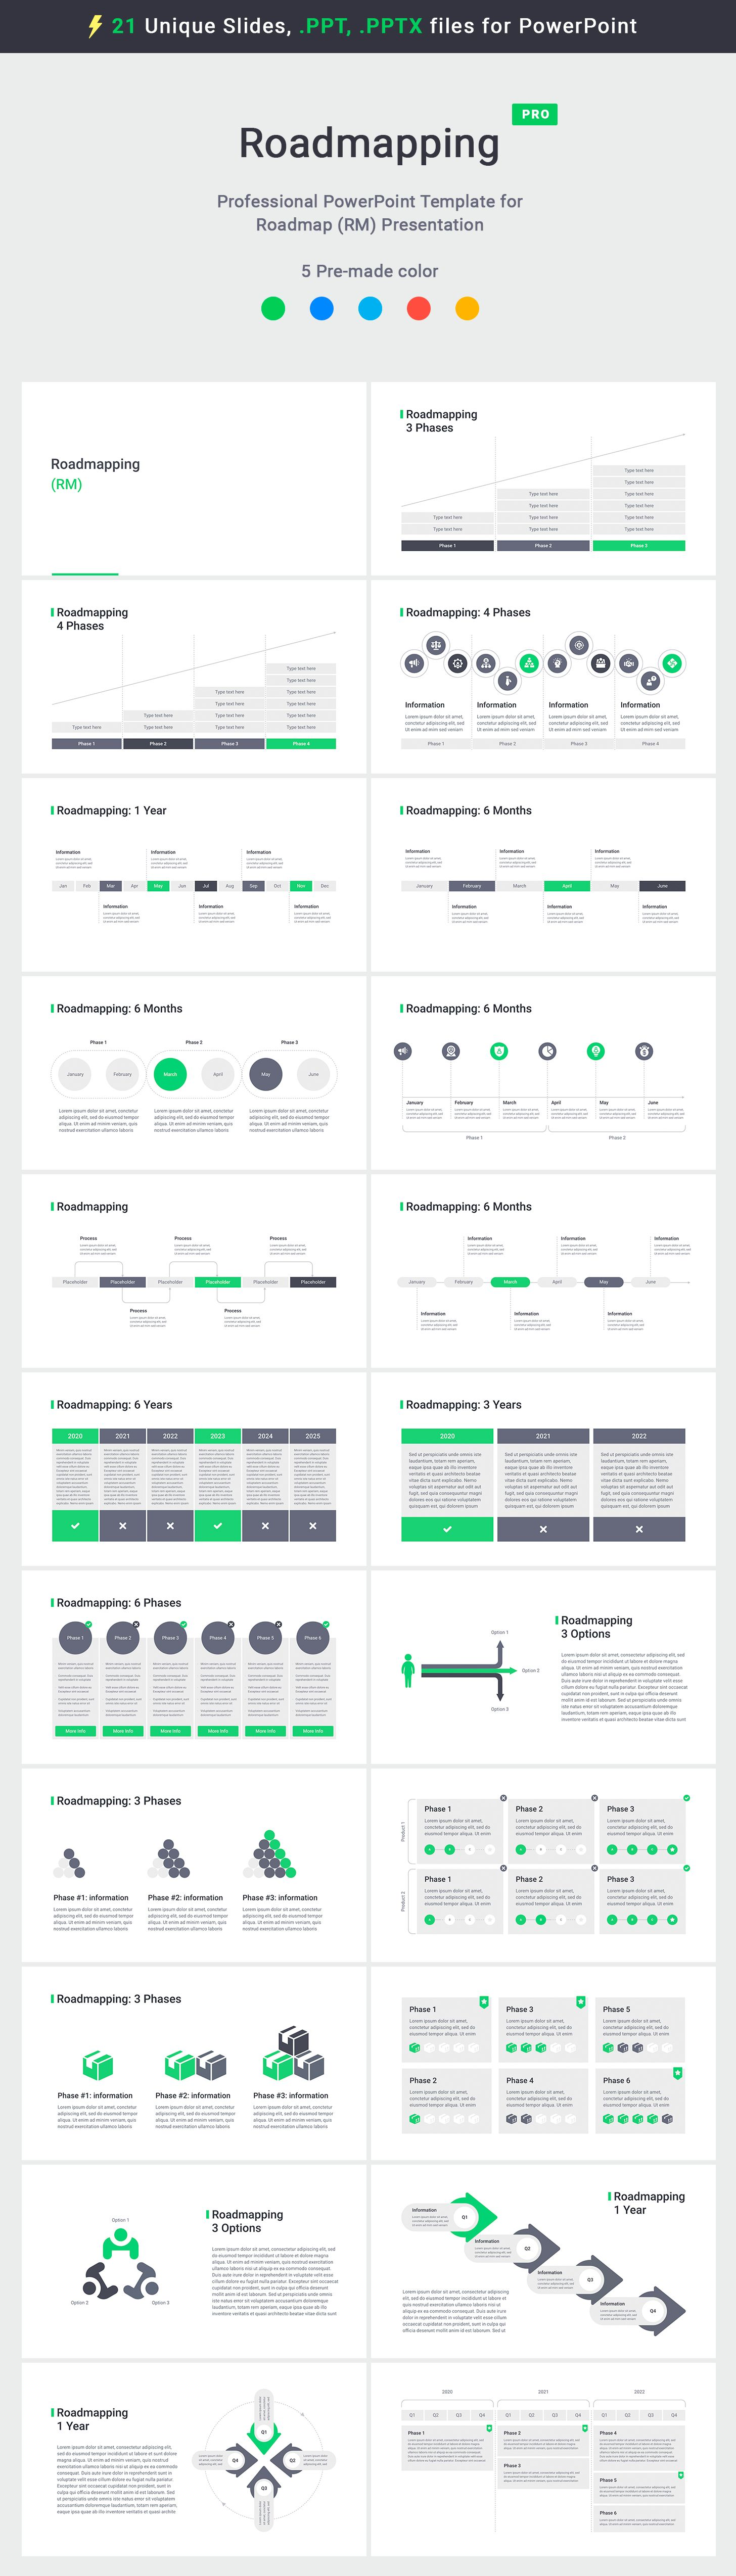 Roadmap templates PowerPoint (PPT, PPTX) Download Now